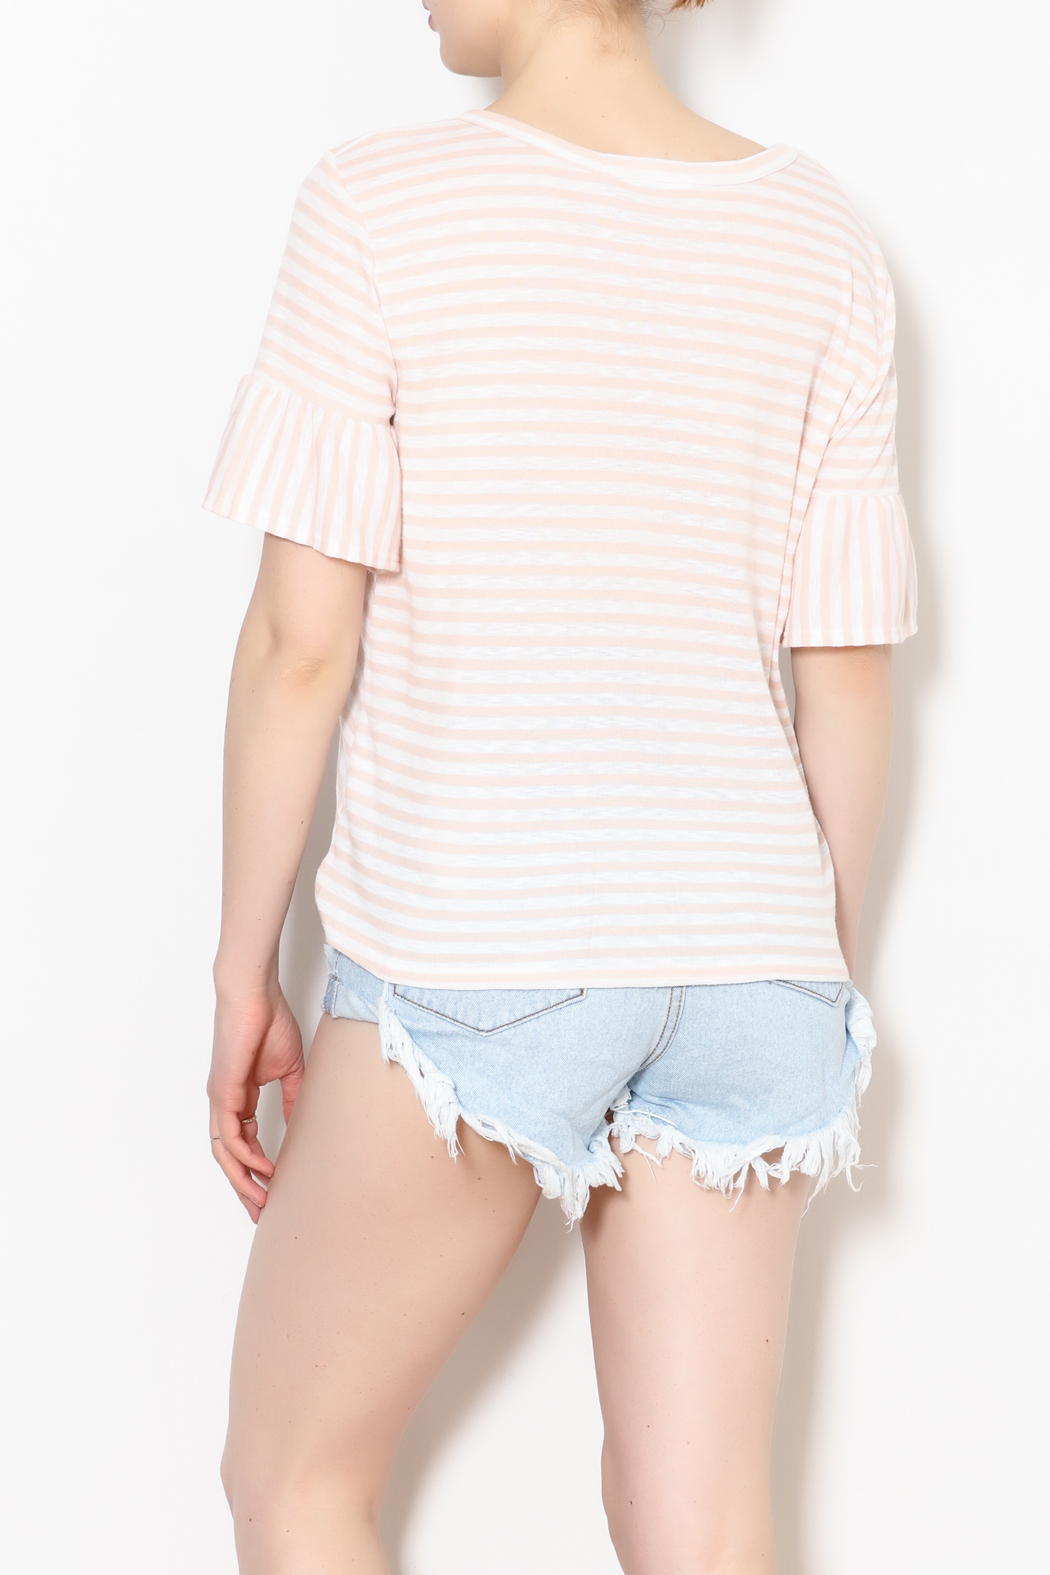 Potter's Pot Peach Stripe Knit - Back Cropped Image